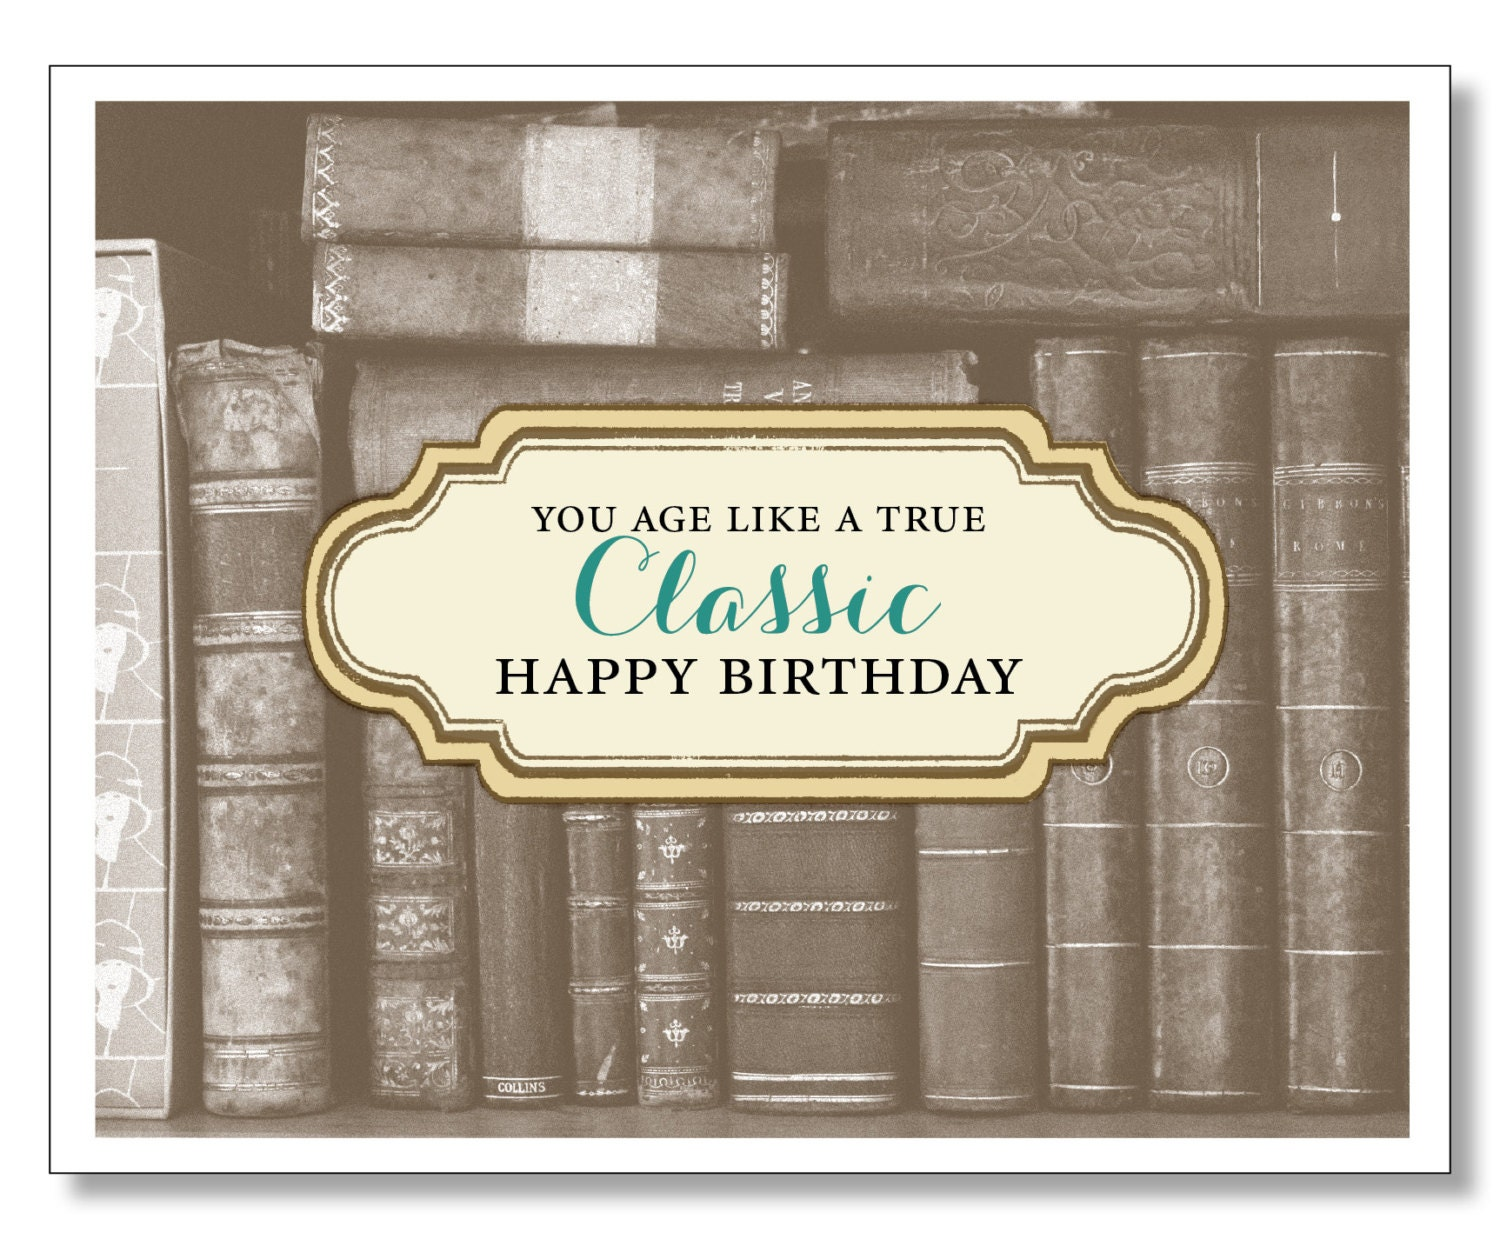 OVER THE HILL Birthday Card Book Lover Card Funny Sweet Kind – Birthday Card Book